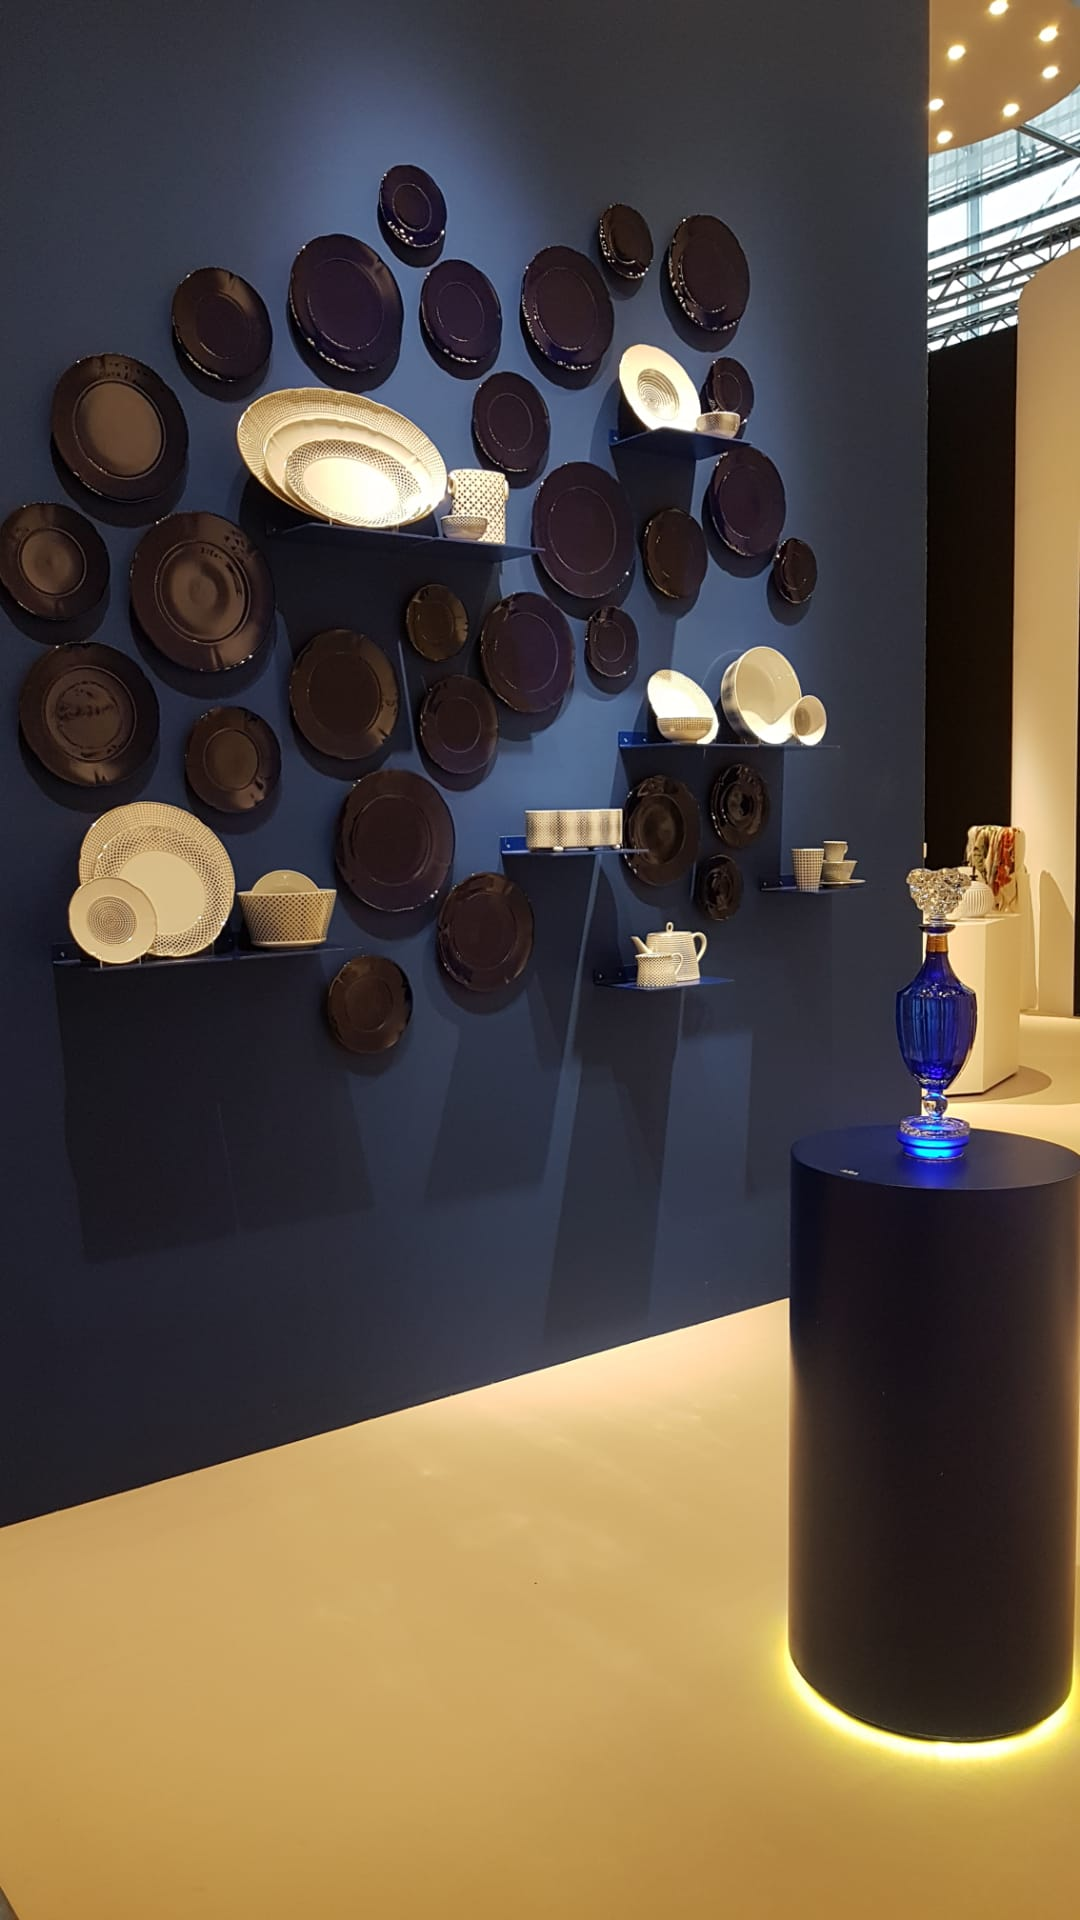 maison et objet 2020 Feast Your Eyes to the Best Moments of Maison et Objet 2020 Vista Alegre